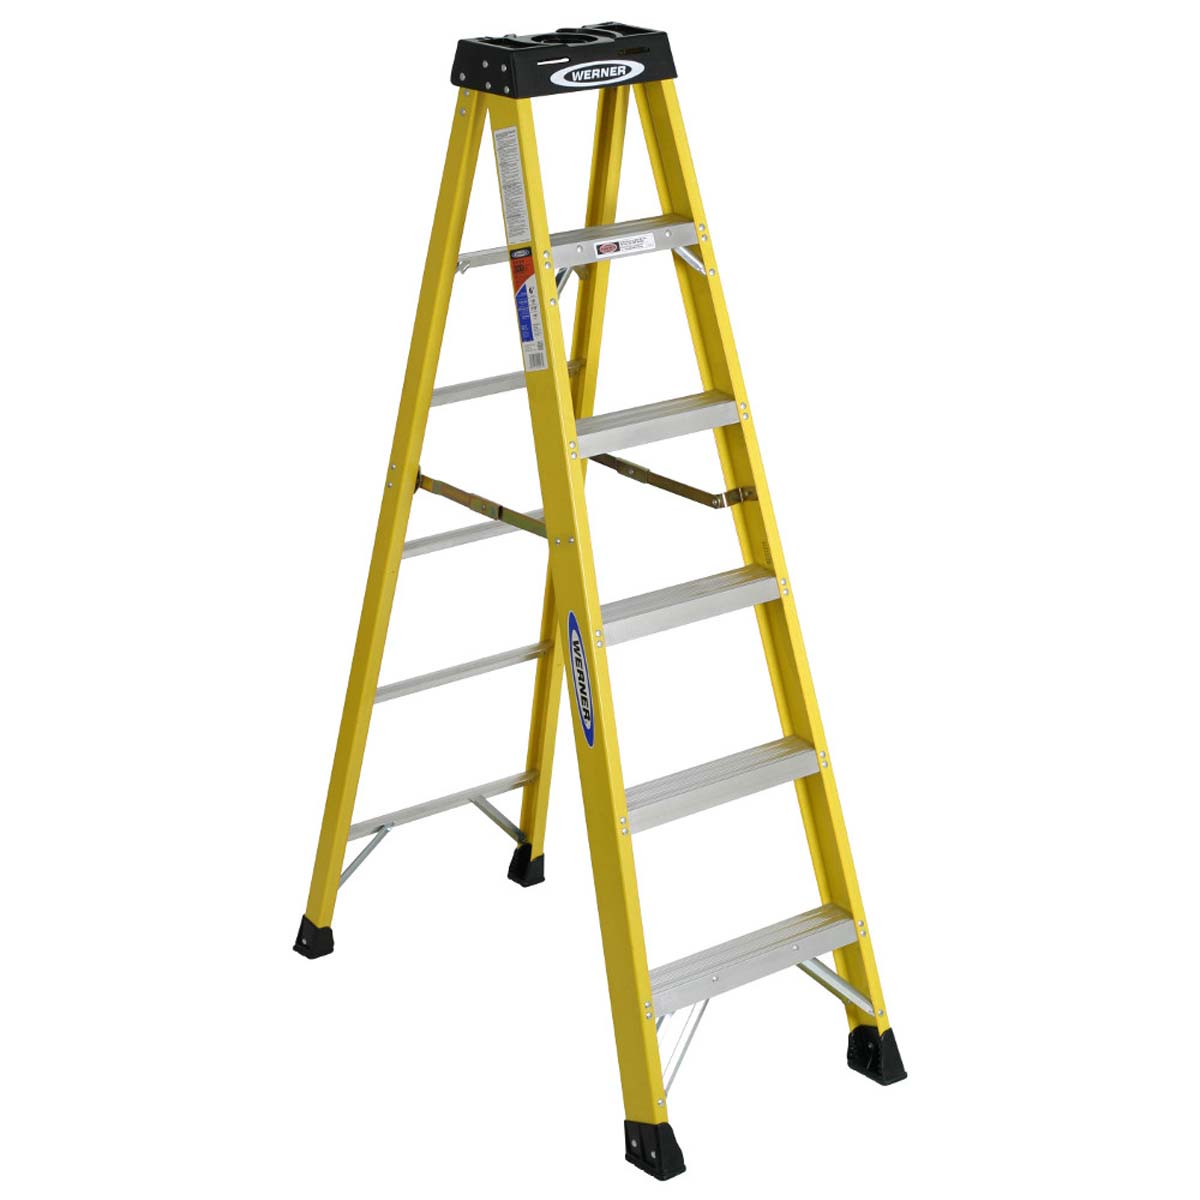 Fiberglass 6 ft Step Ladder